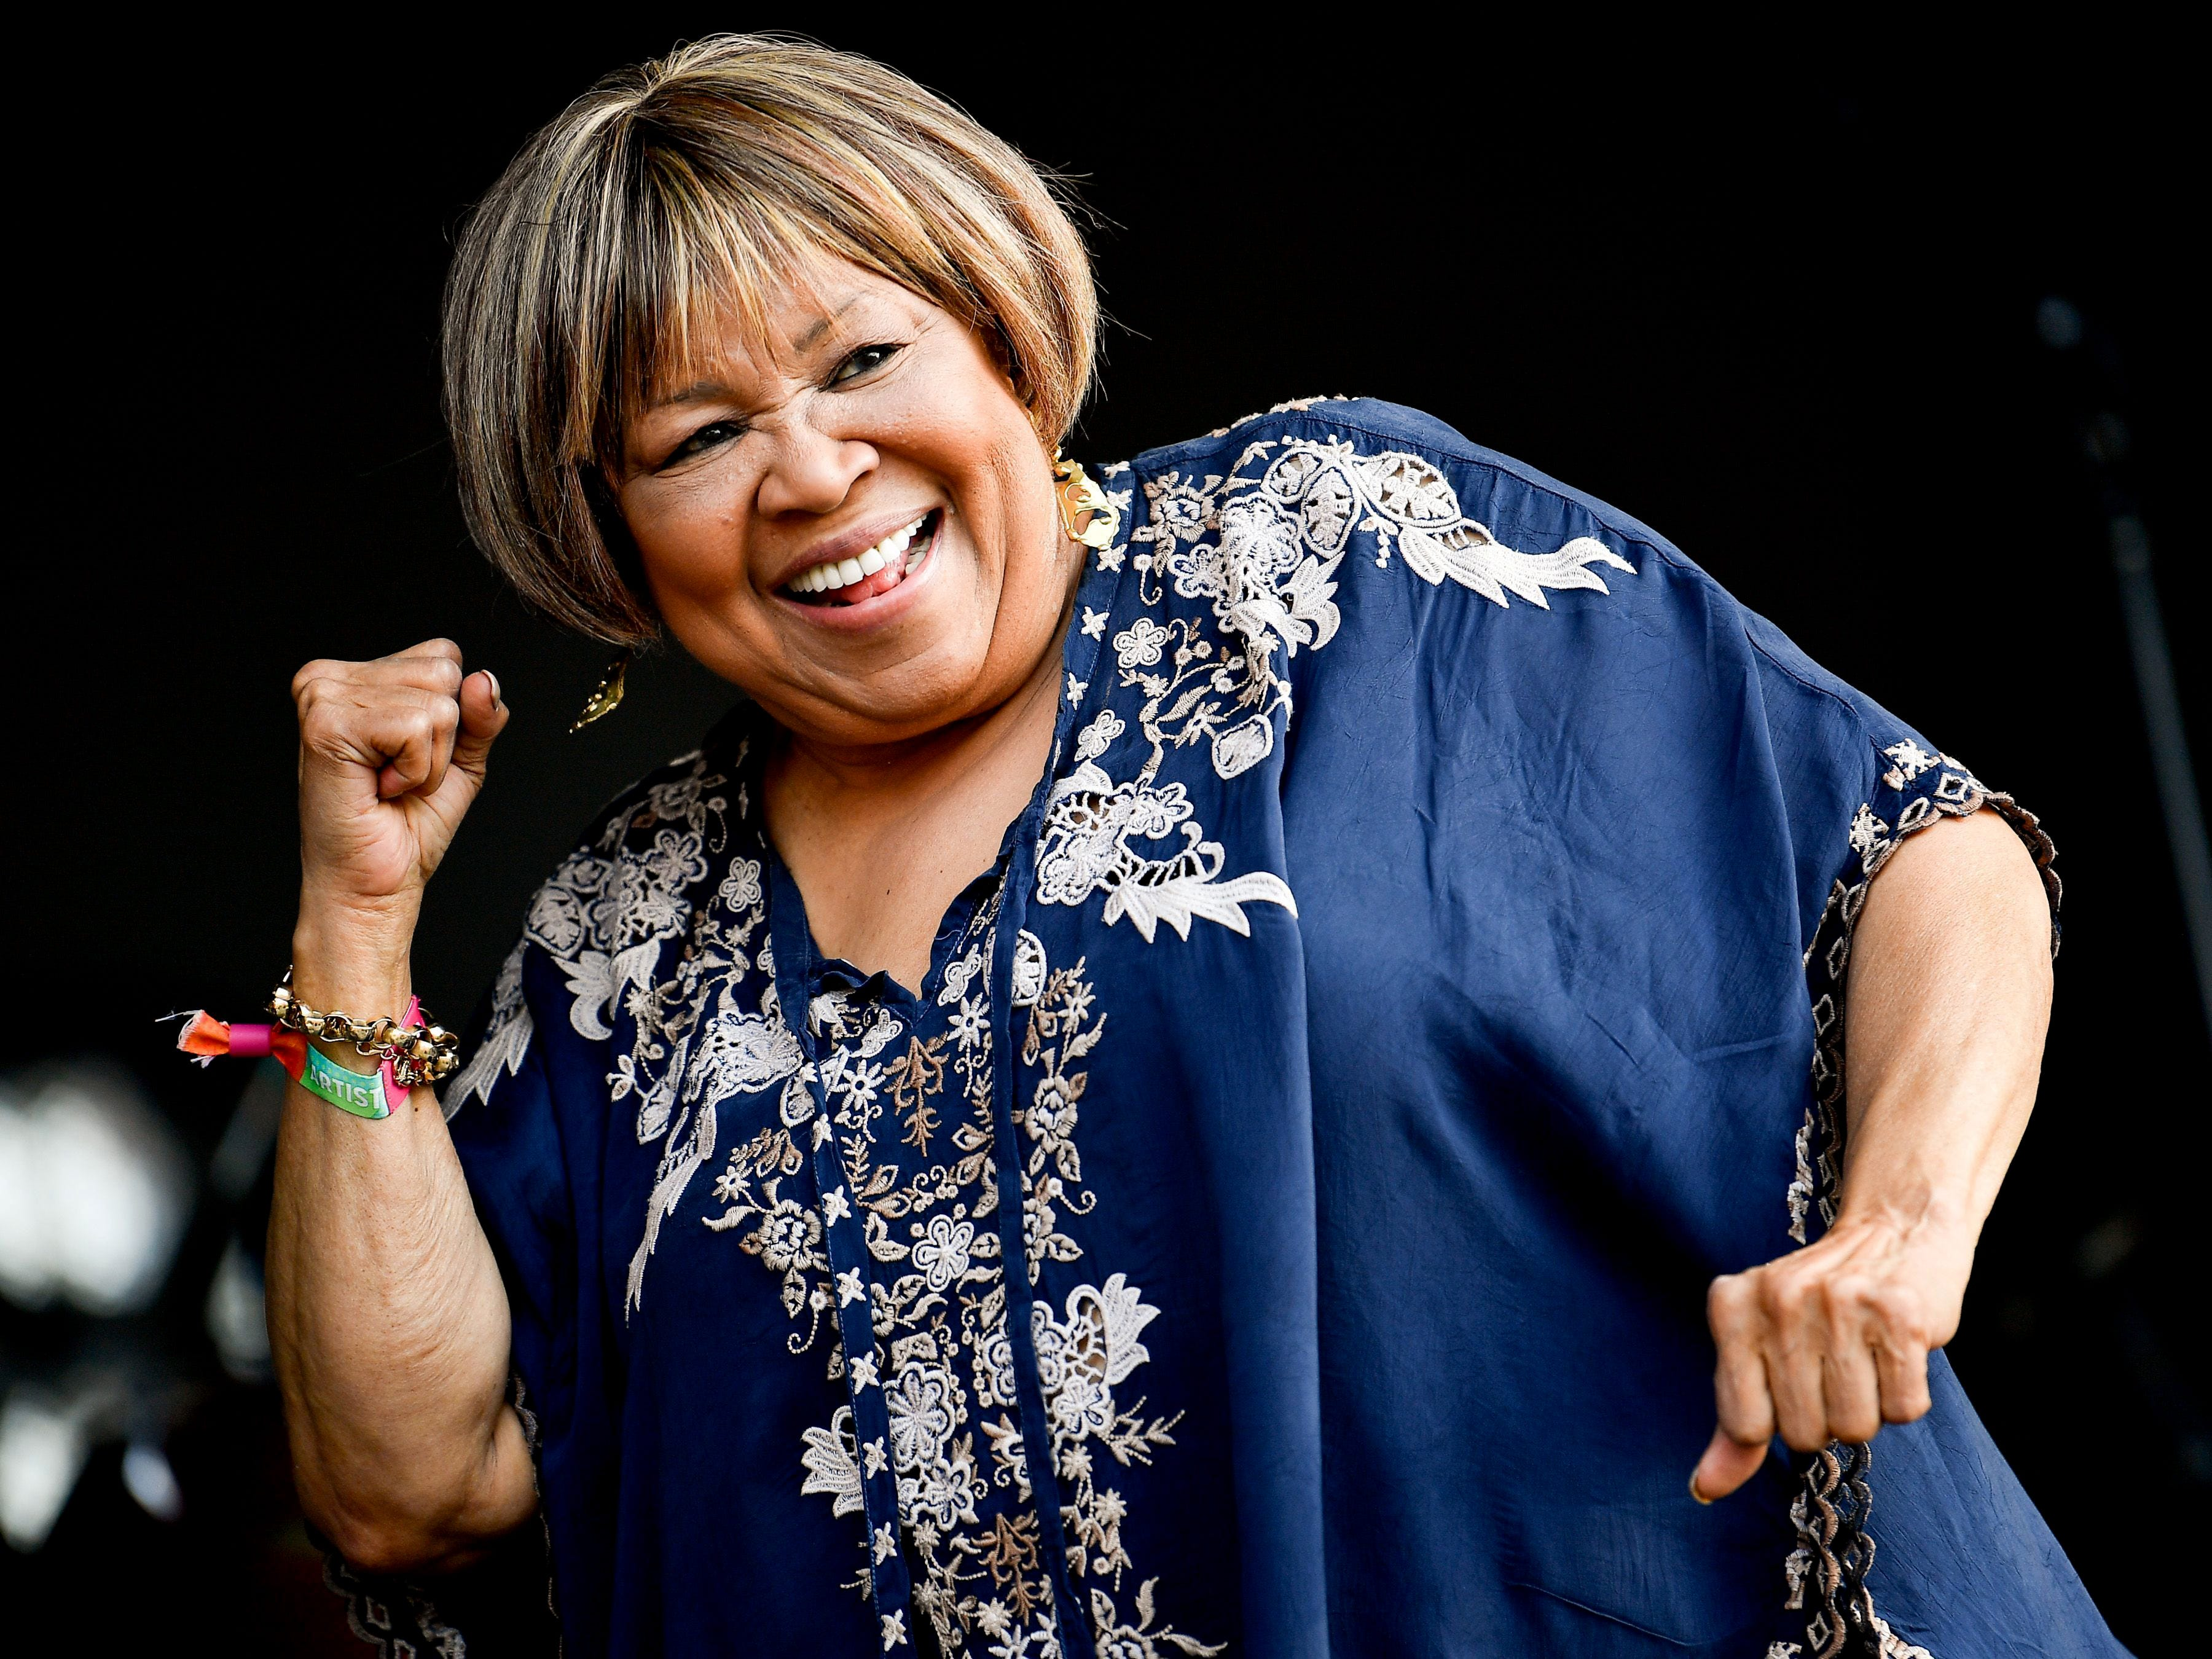 Thriving Roots: 4 can t miss events, from Linda Ronstadt to Mavis Staples and Judd Apatow